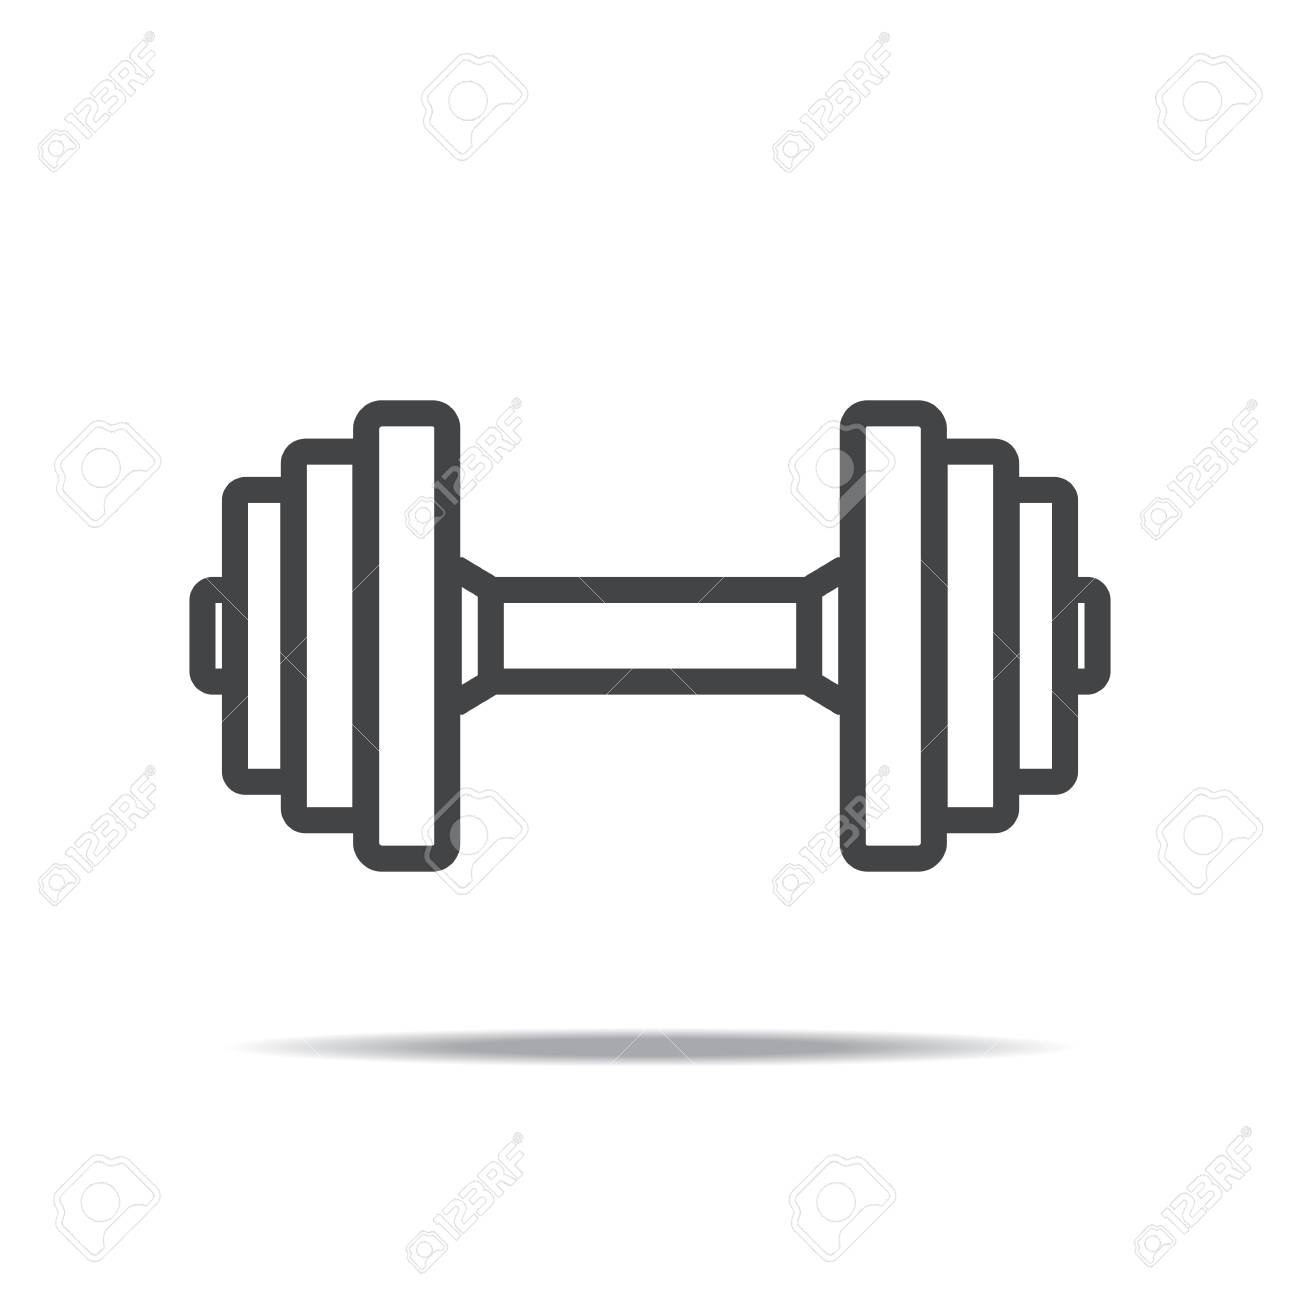 Dumbbell clipart vector. Icon portal